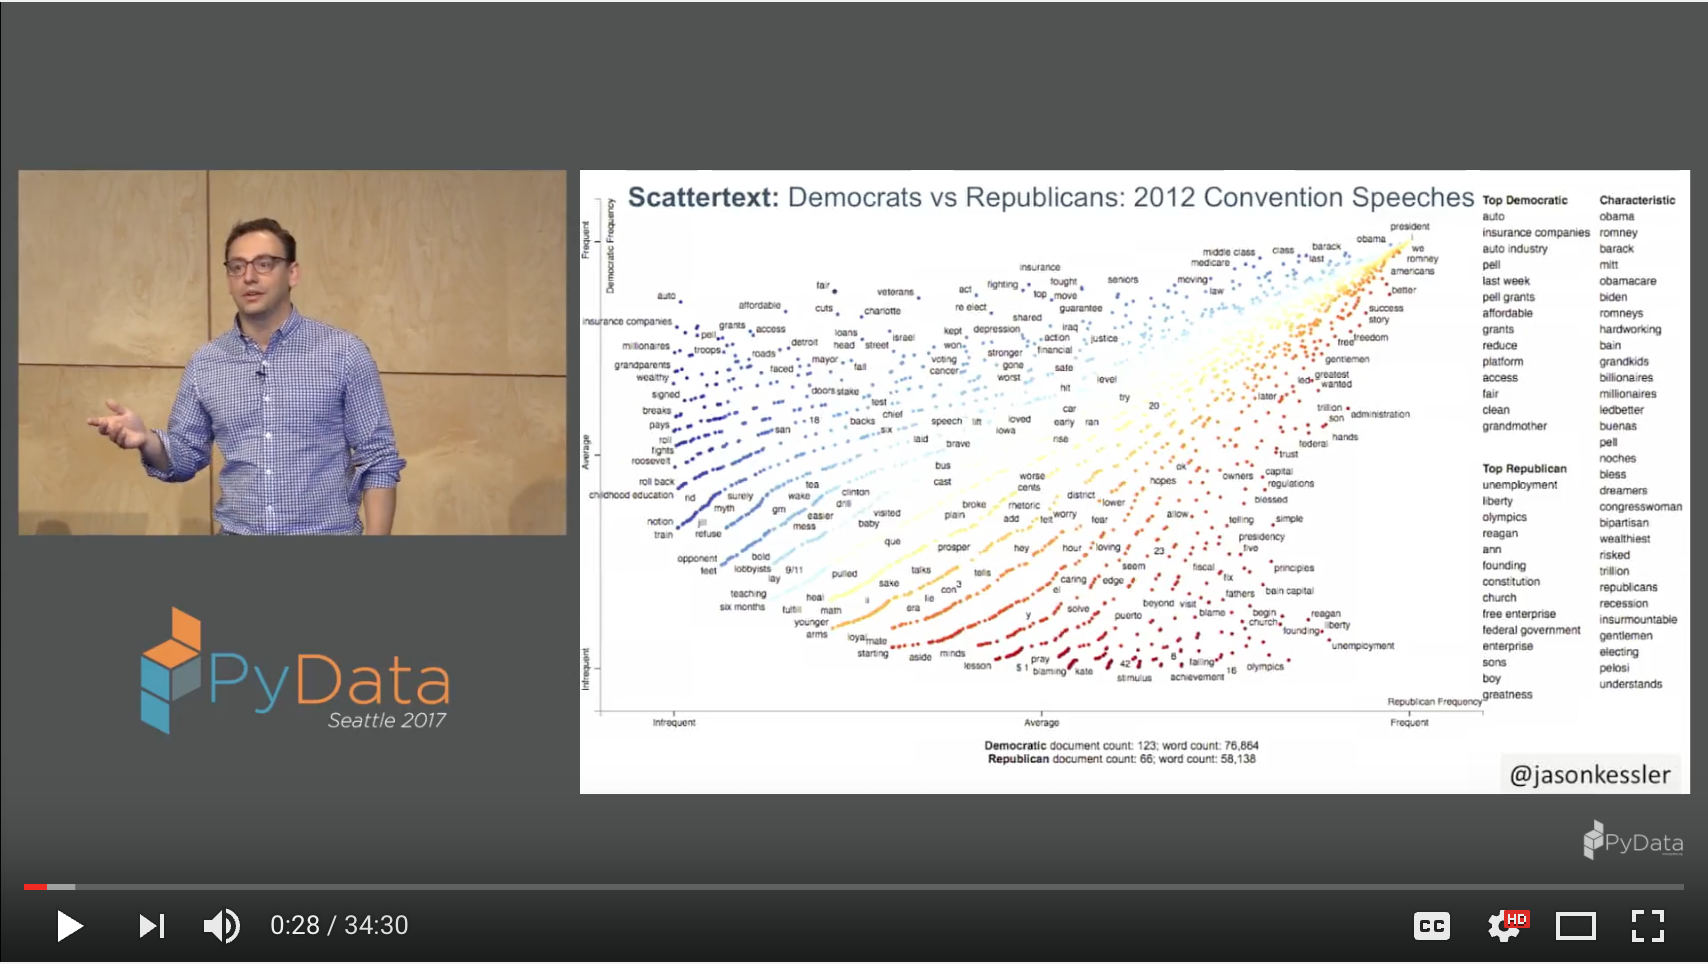 Watch the PyData talk here